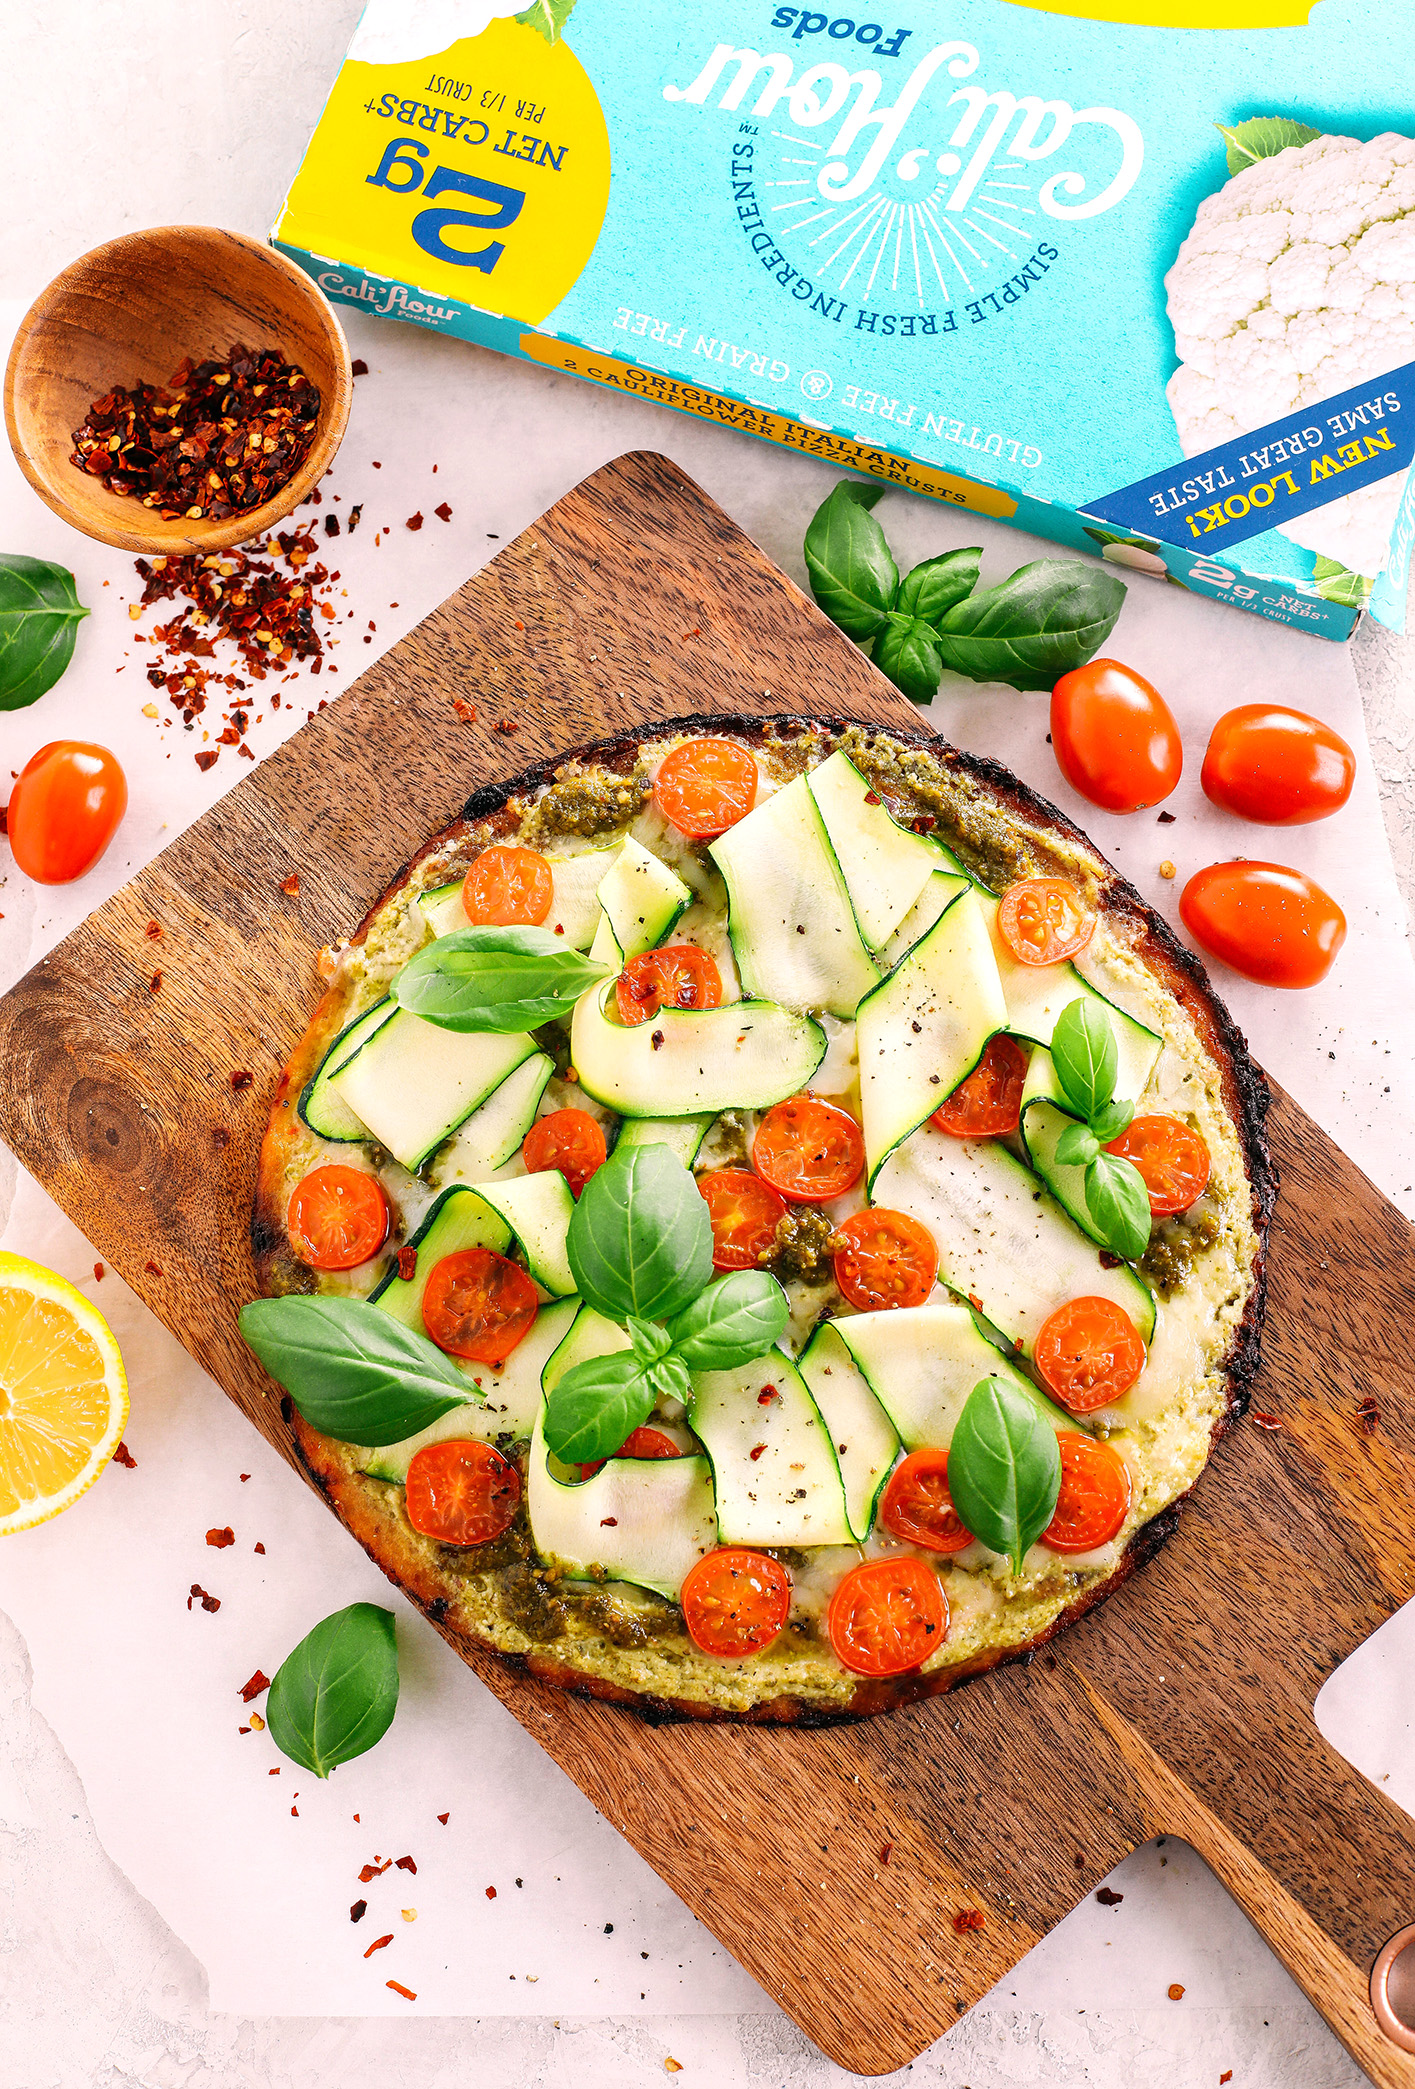 Garden Pesto Cauliflower Pizza loaded with fresh tomatoes, zucchini, homemade basil pesto and ricotta all topped on a crispy cauliflower crust for a delicious low carb meal in just 15 minutes!